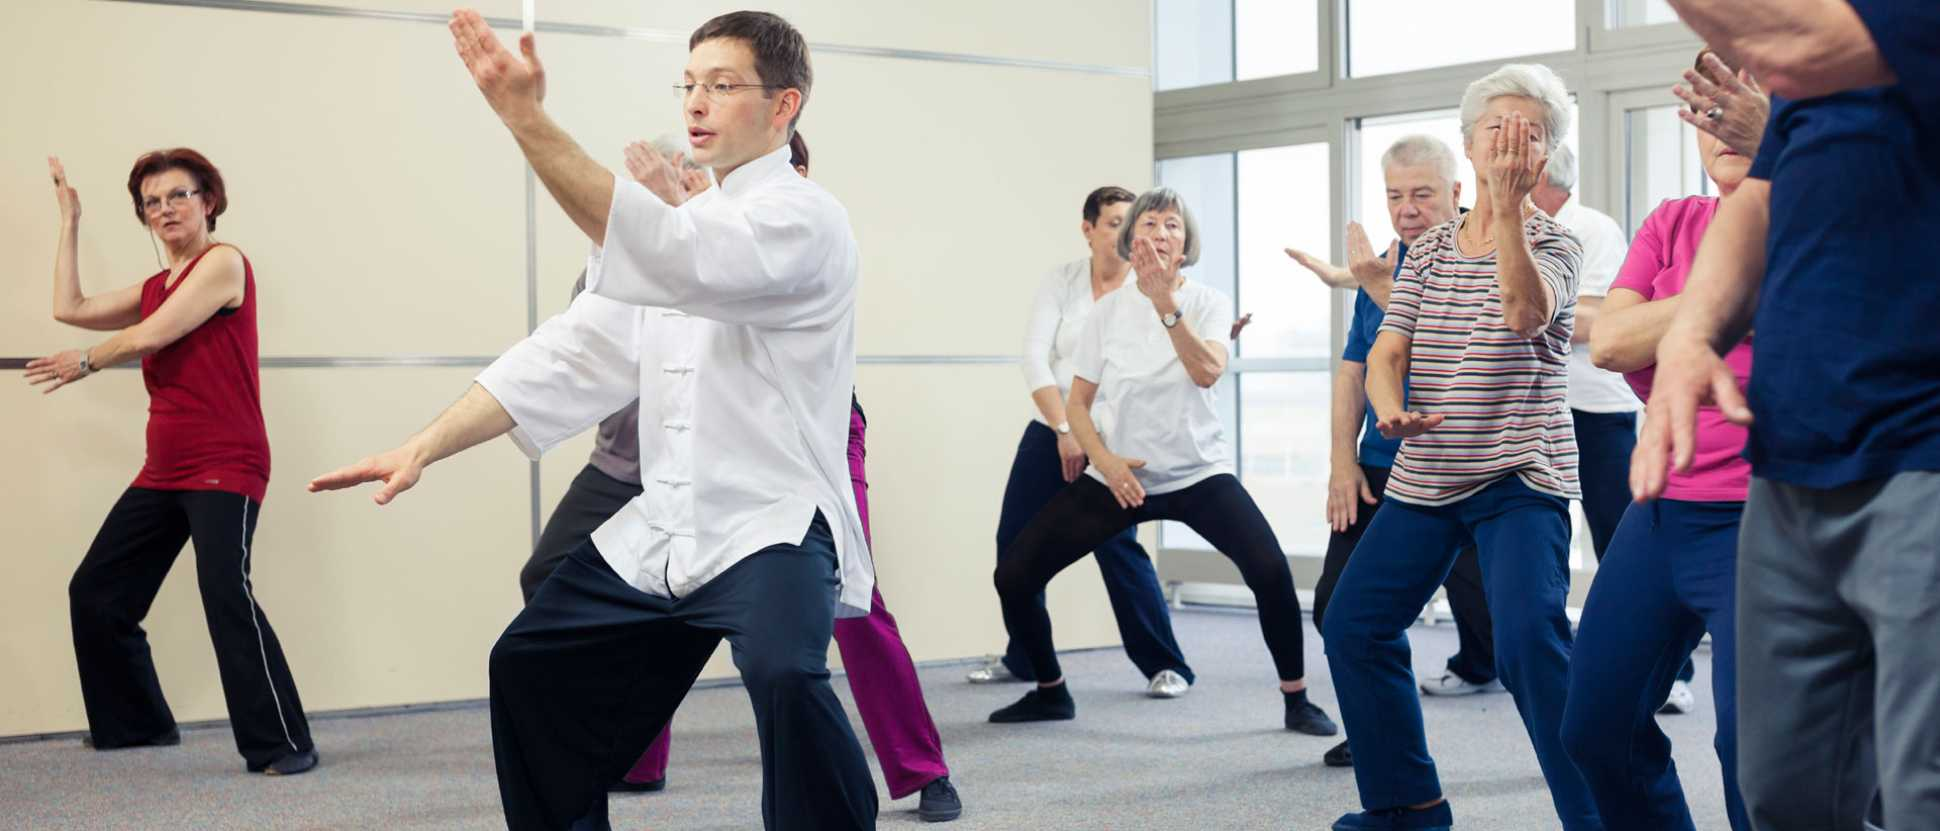 160314-Chinese-exercises-may-improve-cardiovascular-health-and-reduce-falls-riskjpg